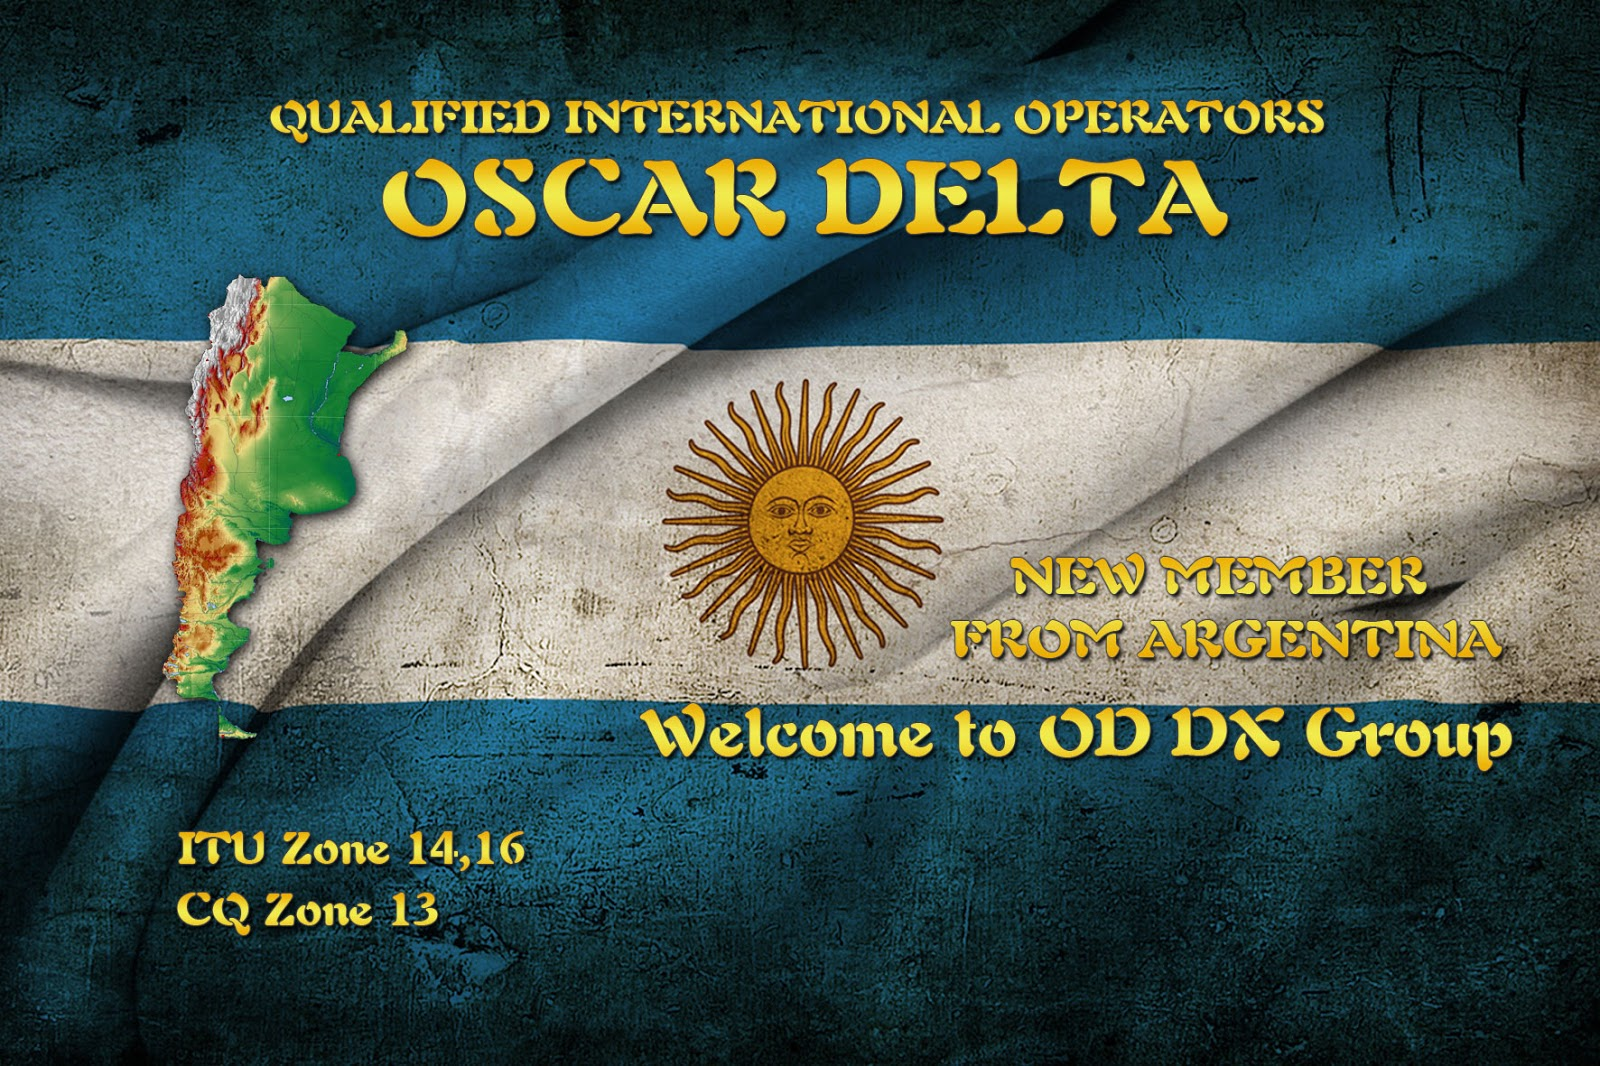 Oscar Delta DX Group: April 2018